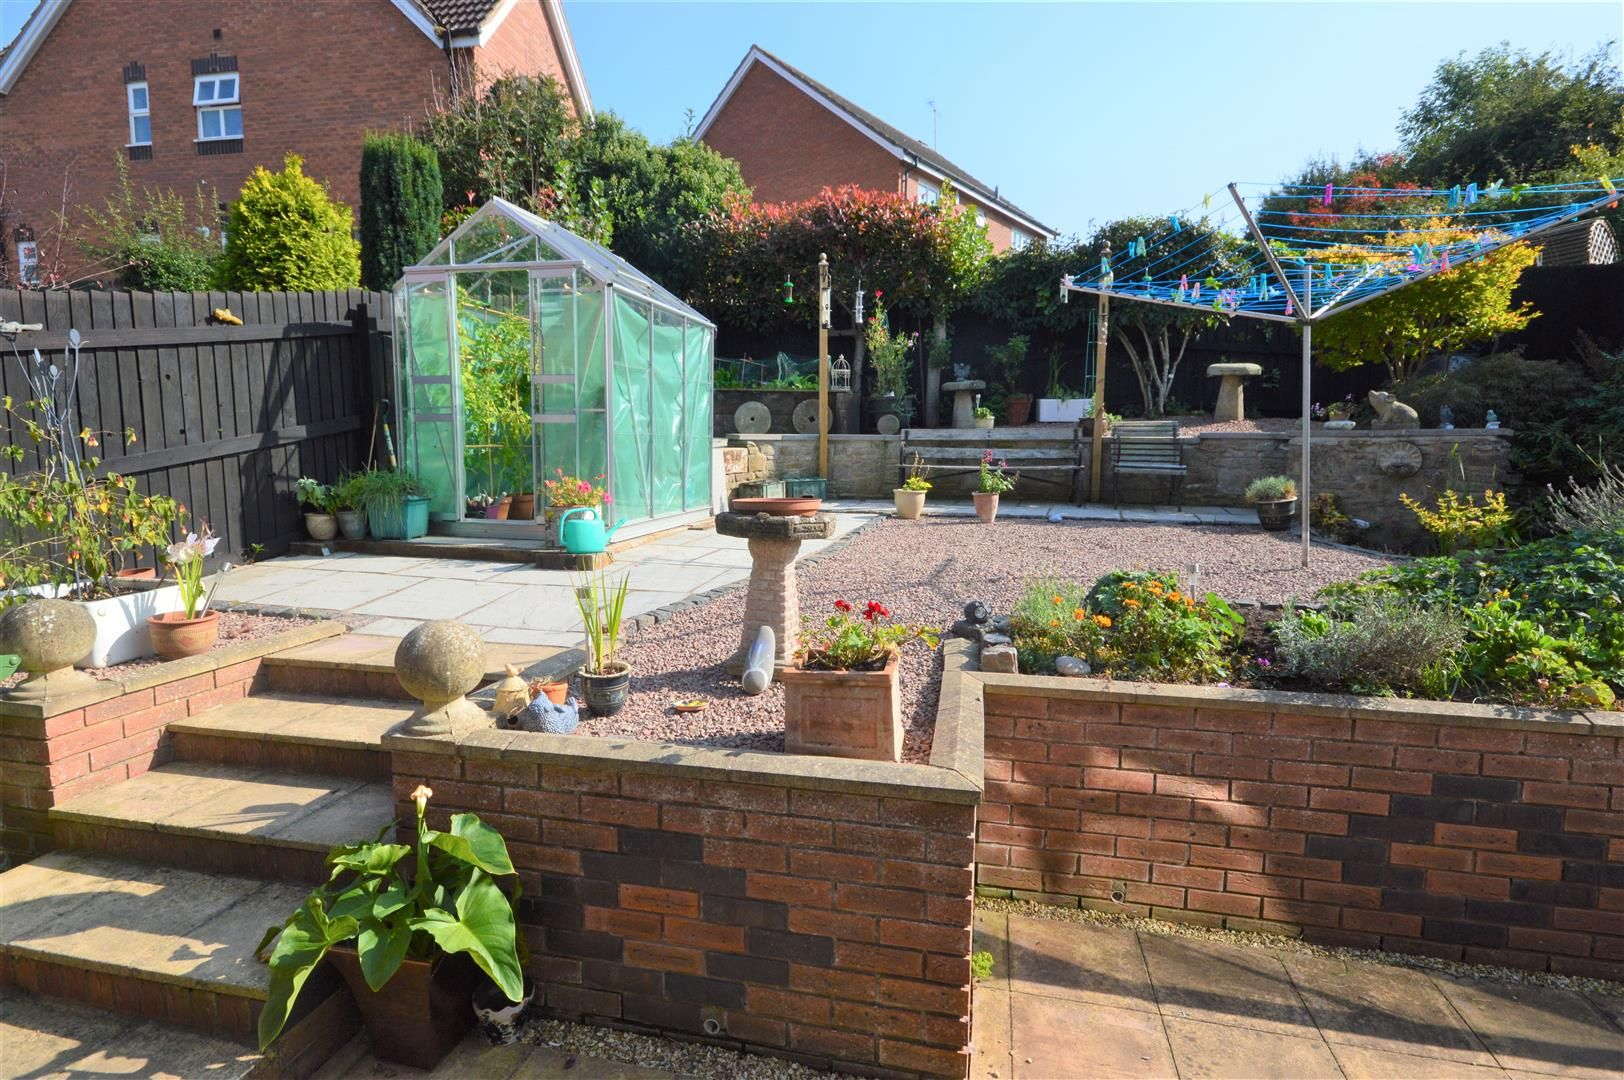 4 bed detached for sale in Leominster  - Property Image 10